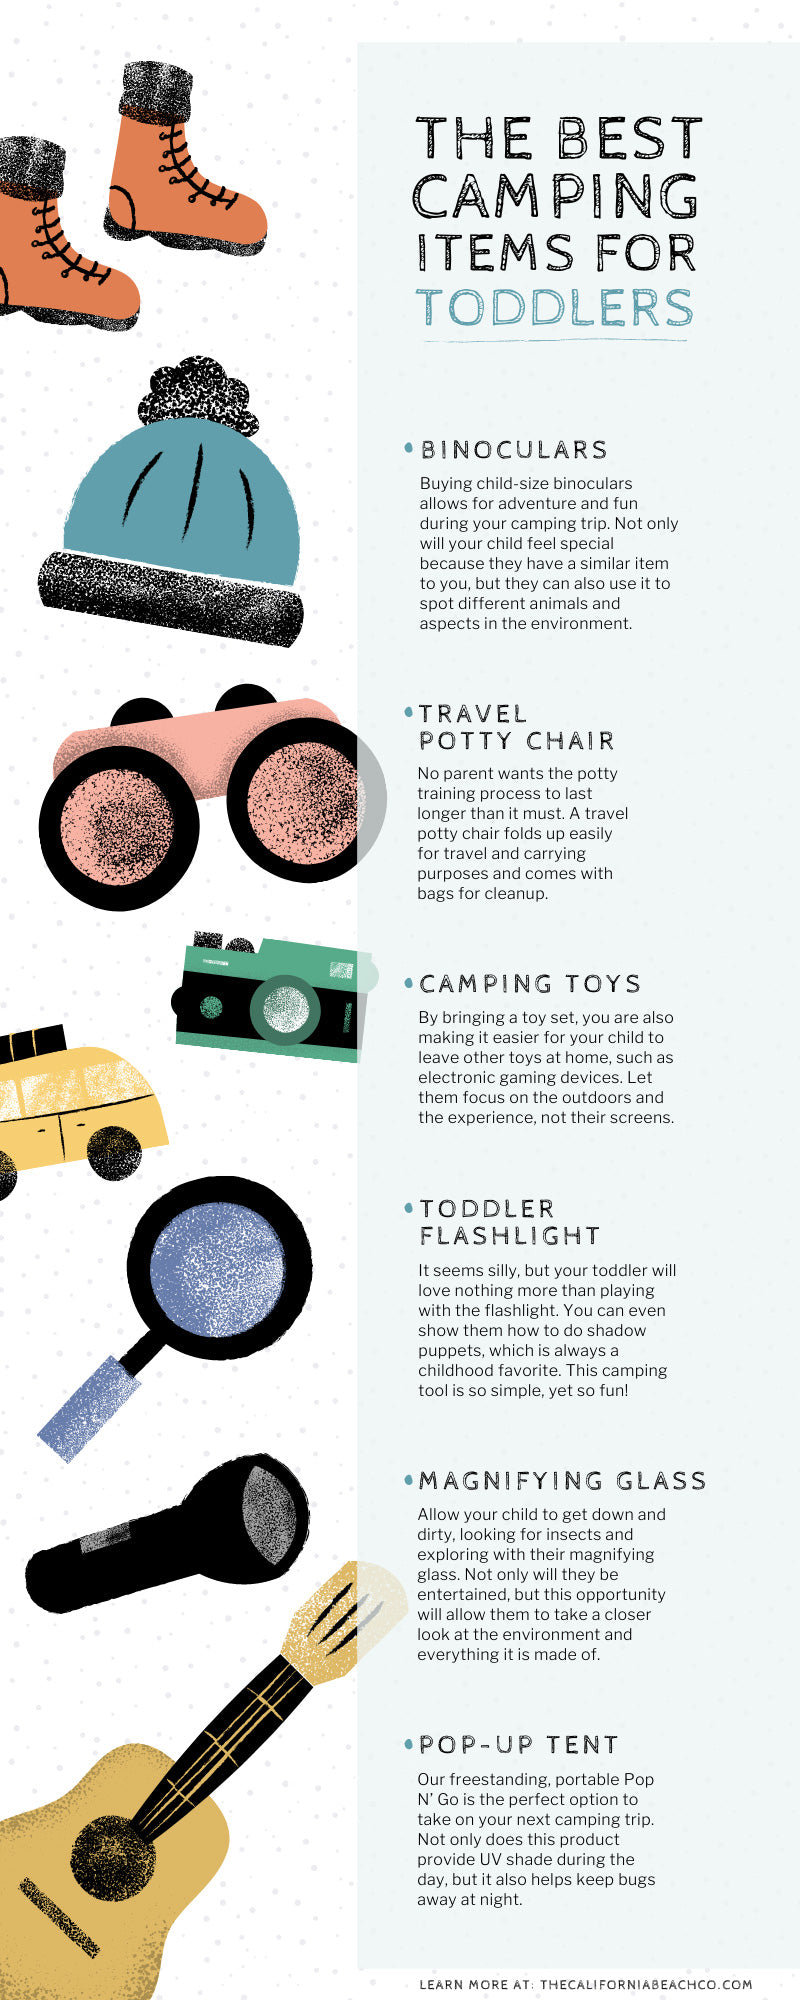 The Best Camping Items for Toddlers